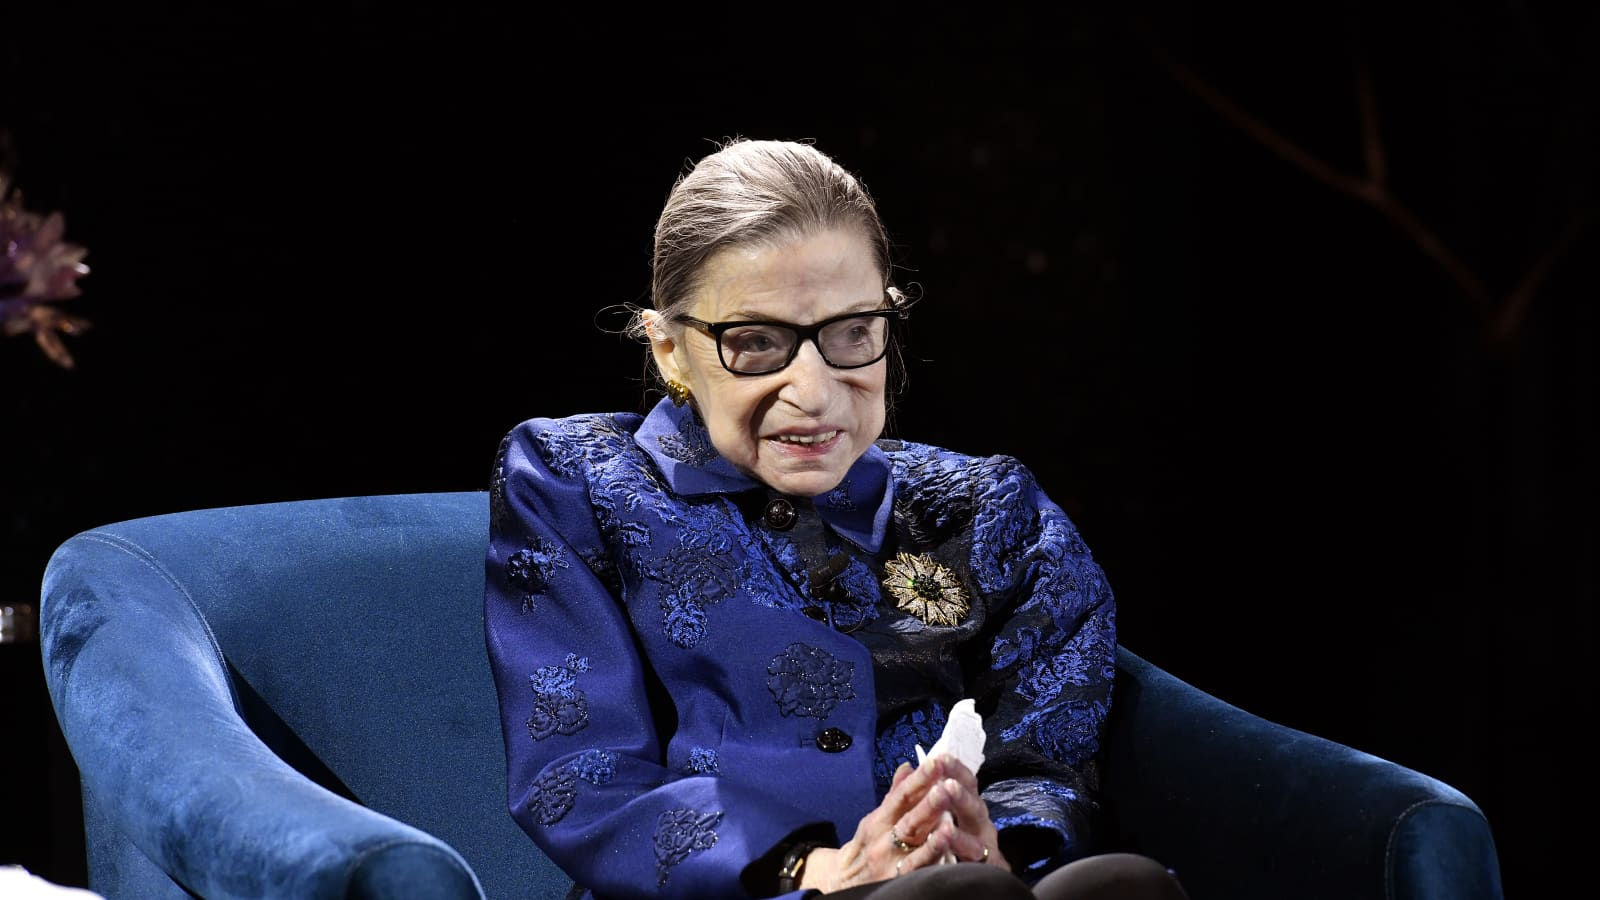 Ruth Bader Ginsberg Says Young People Keep Her Optimistic About Future